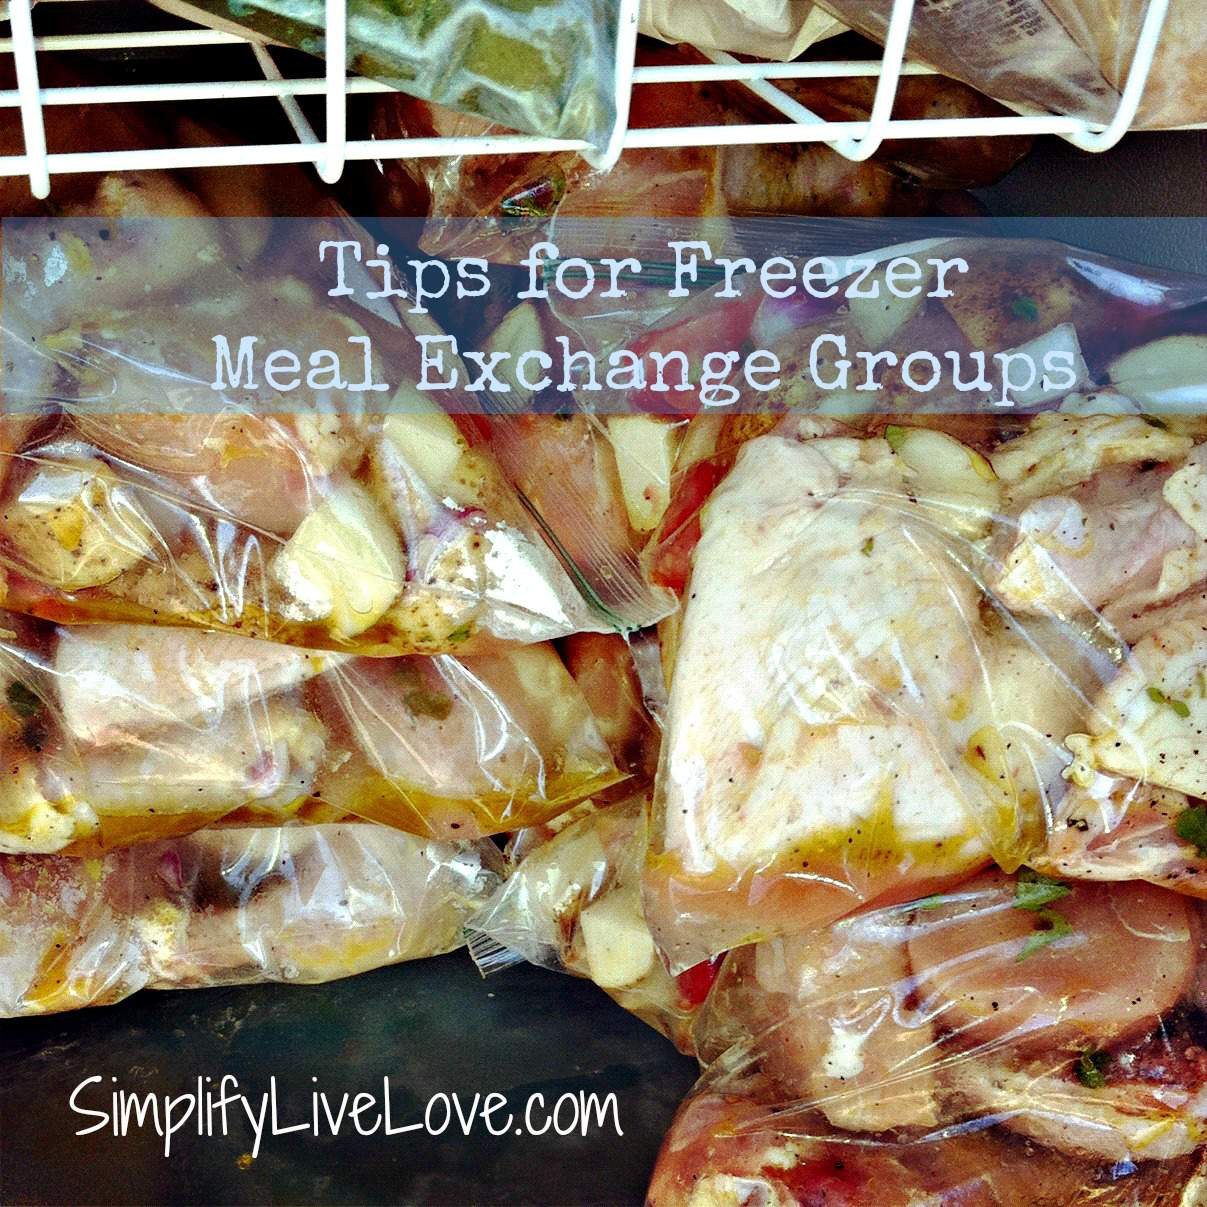 Tips for Setting up a Freezer Meal Exchange